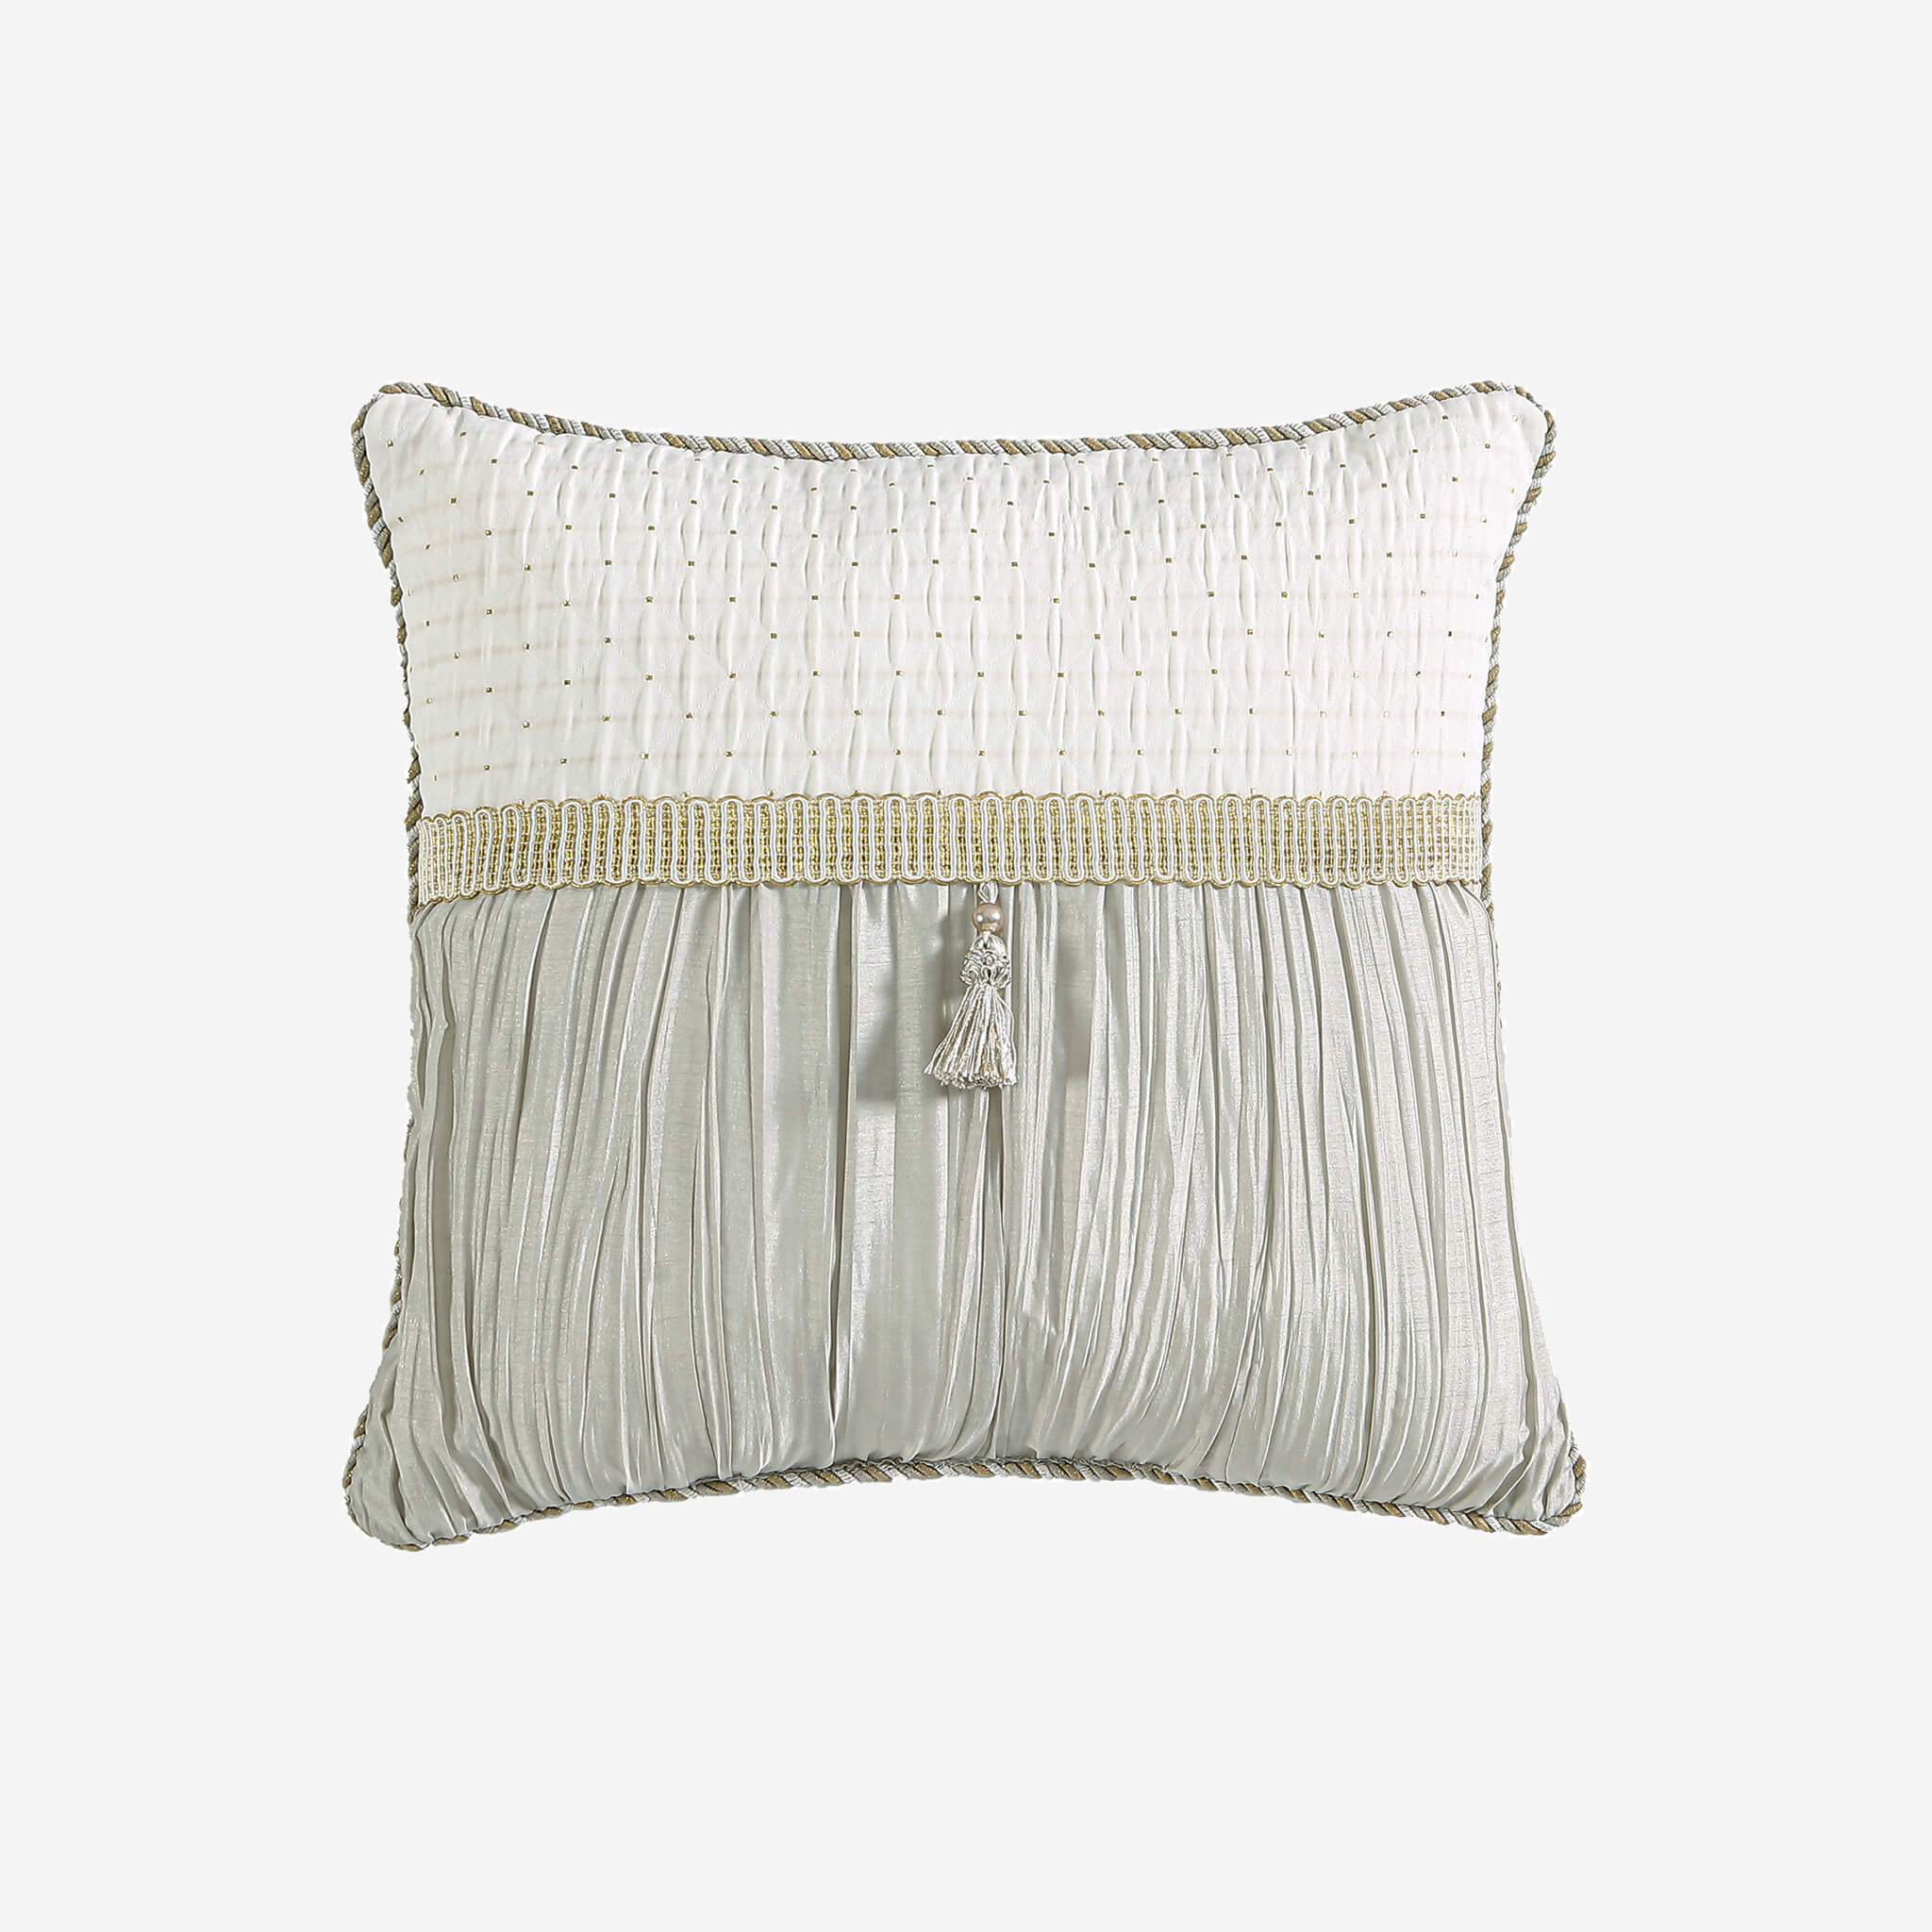 "Everly 16"" x 16"" Reversible Fashion Pillow With Tassels"